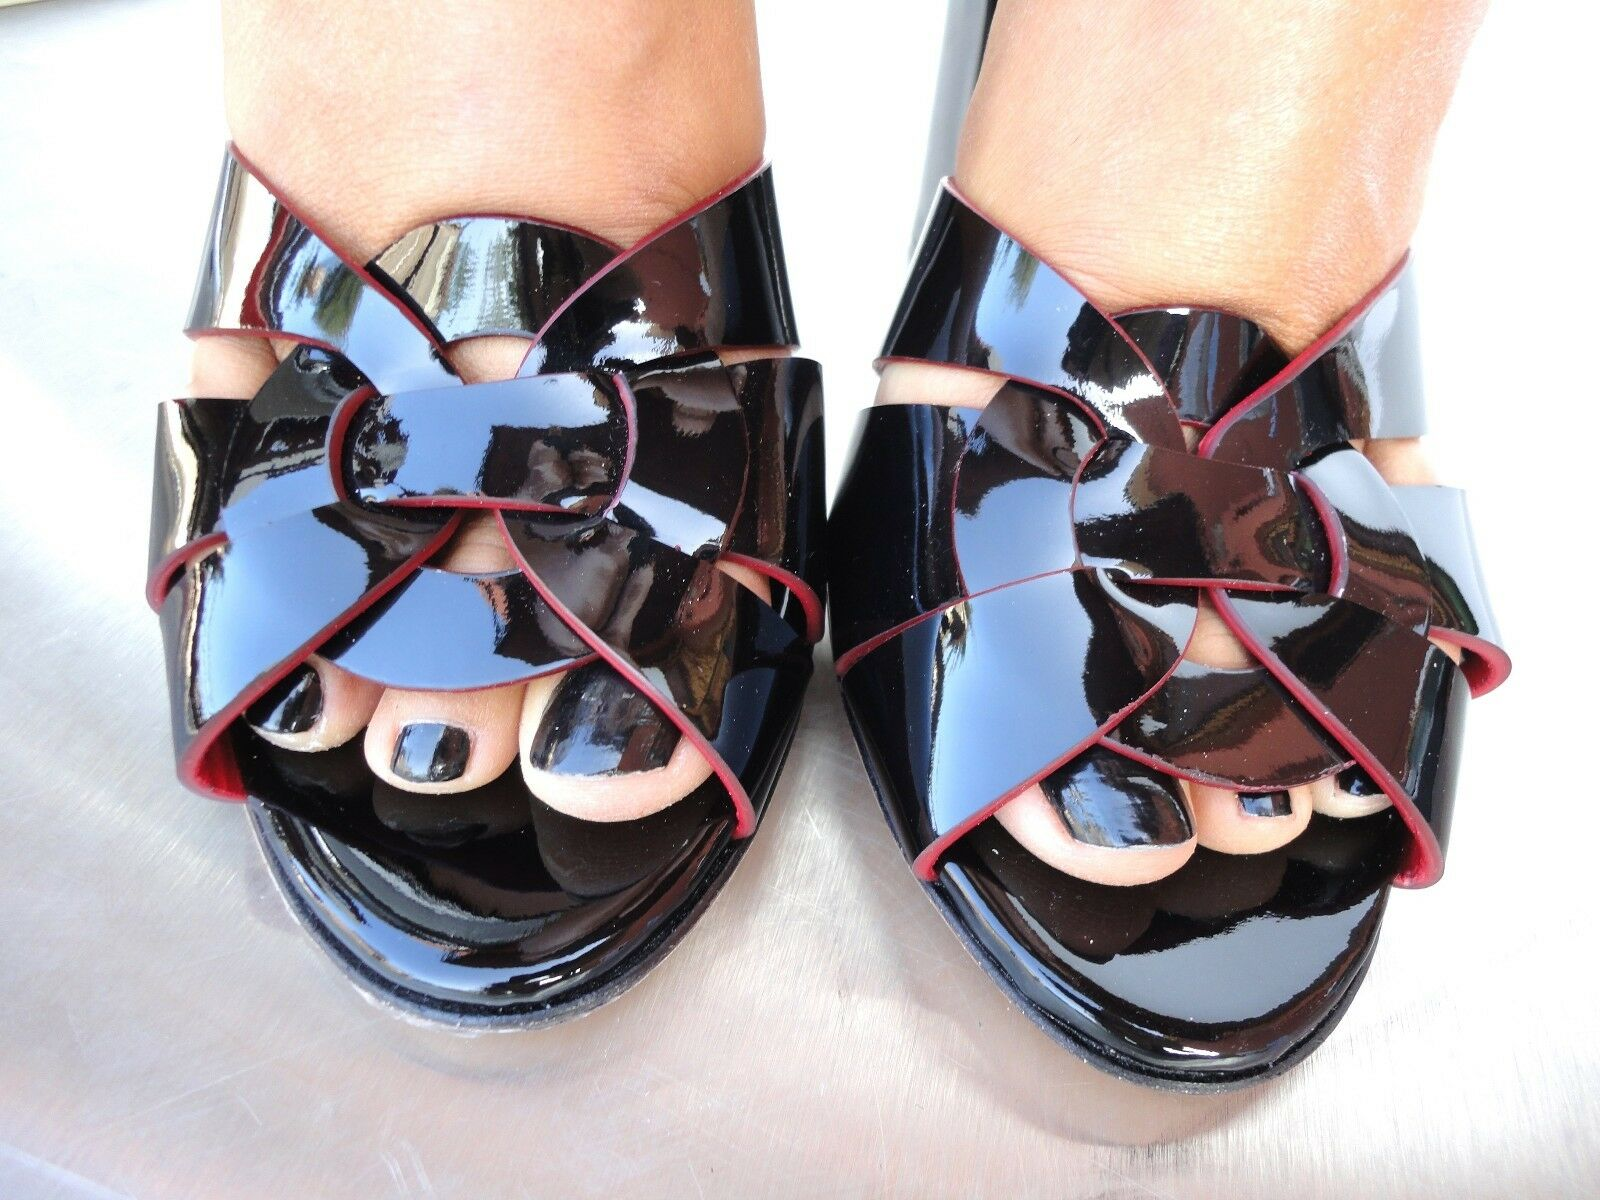 CQ COUTURE SANDALS BLACK CUSTOM SANDALI SANDALEN HEELS PATENT LEATHER BLACK SANDALS NERO 36 e4a3ae